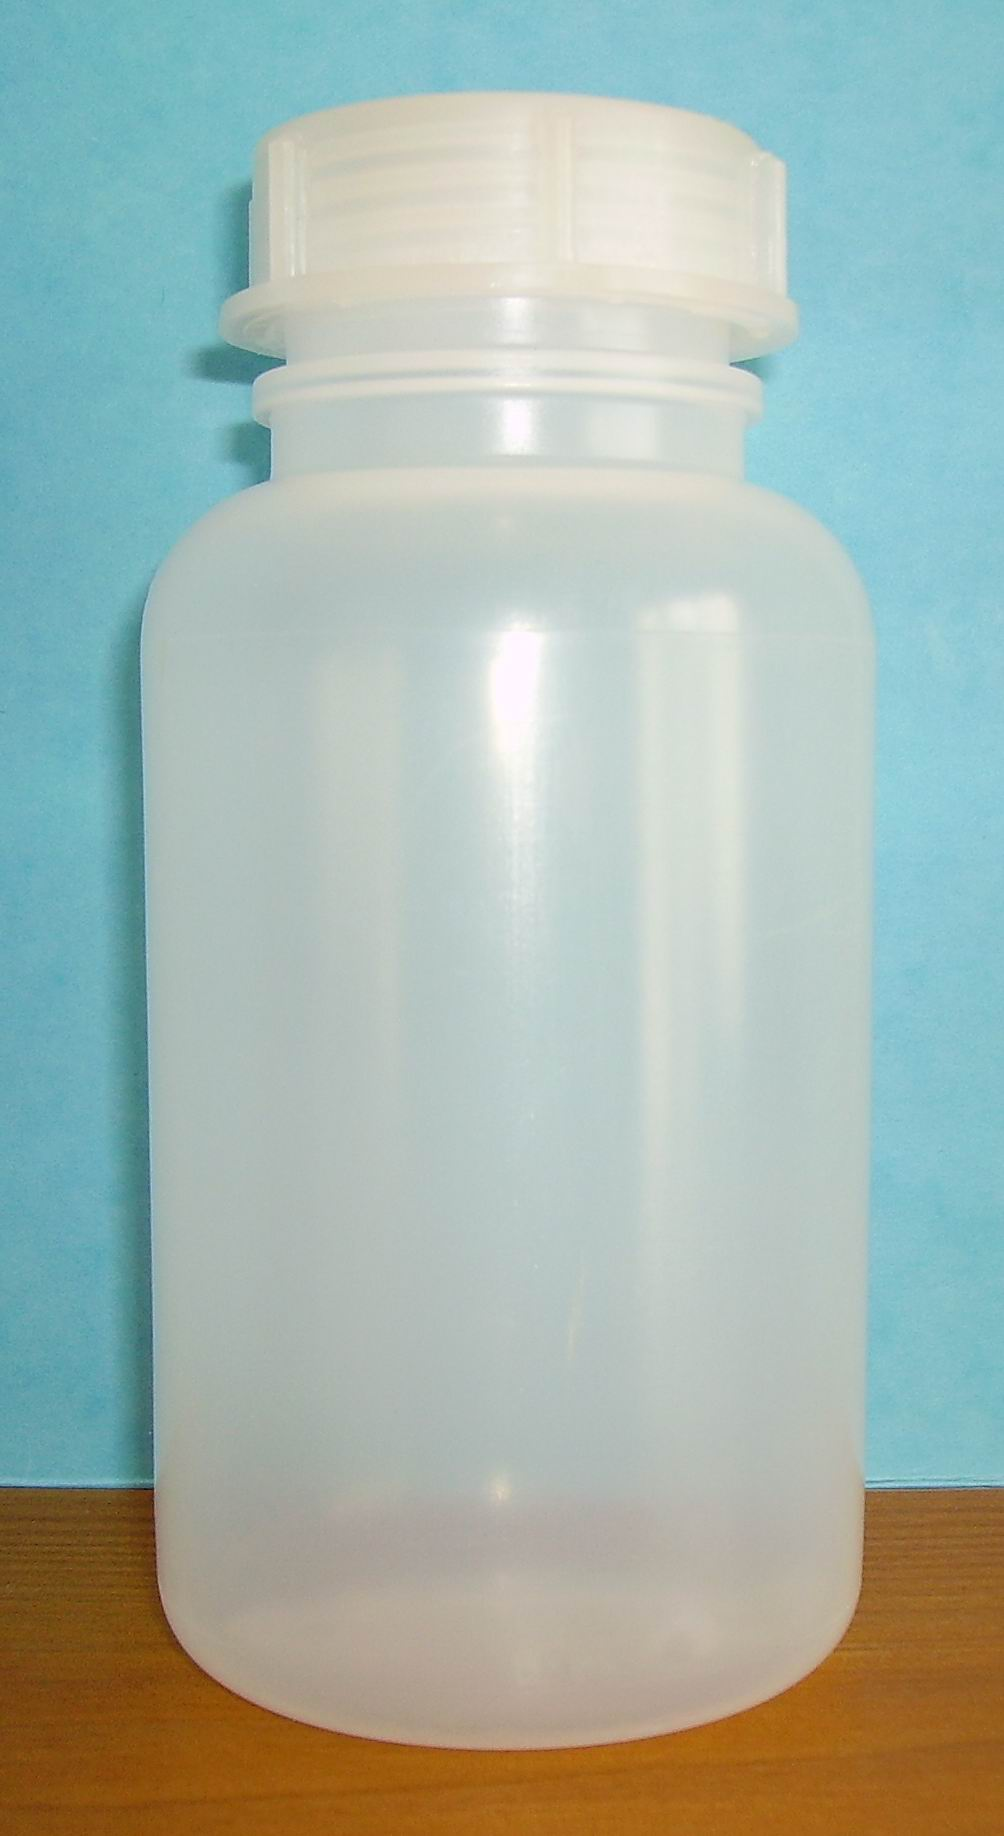 Ldpe Bottle Uses : Polyethylene simple english wikipedia the free encyclopedia